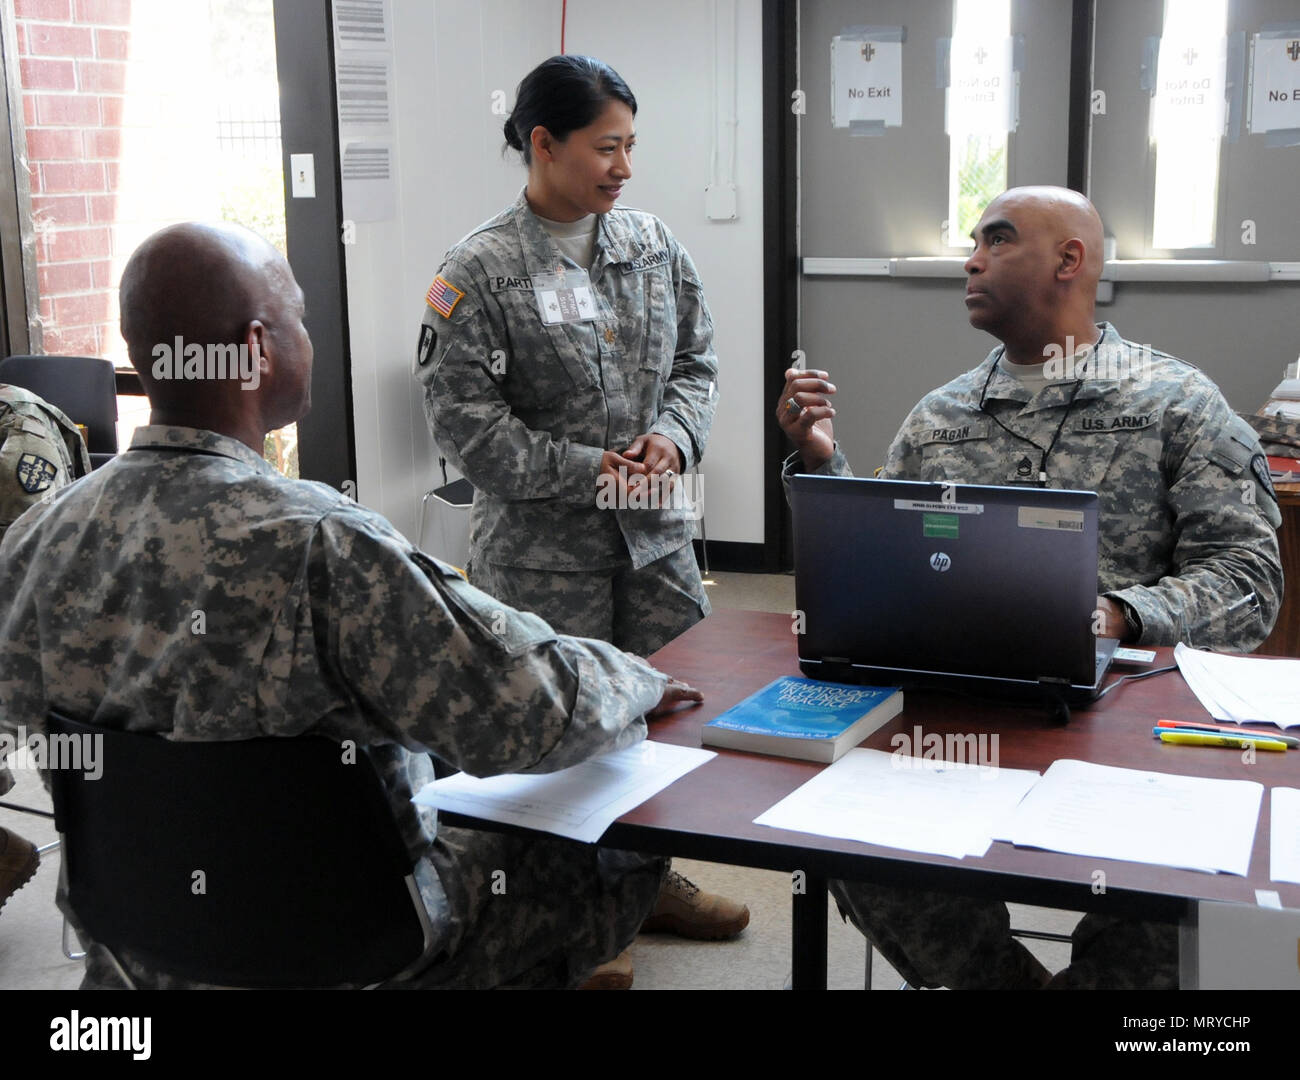 Sgt. 1st Class Luis Pagan, a practical nursing specialist (far right) assigned to Army Medical Department Professional Management Command (APMC), and Maj. Ausha Partido, the mobilization officer for Western Medical Area Readiness Support Group (middle), are assisting U.S. Army Reserve Soldiers assigned to the 7452nd Medical Backfill Battalion who have been identified to prepare for a Professional Filler System (PROFIS) mission.   Soldiers mobilized to support this mission will backfill Medical Command's active duty slots at medical centers and clinics across their health care organization.  AP - Stock Image